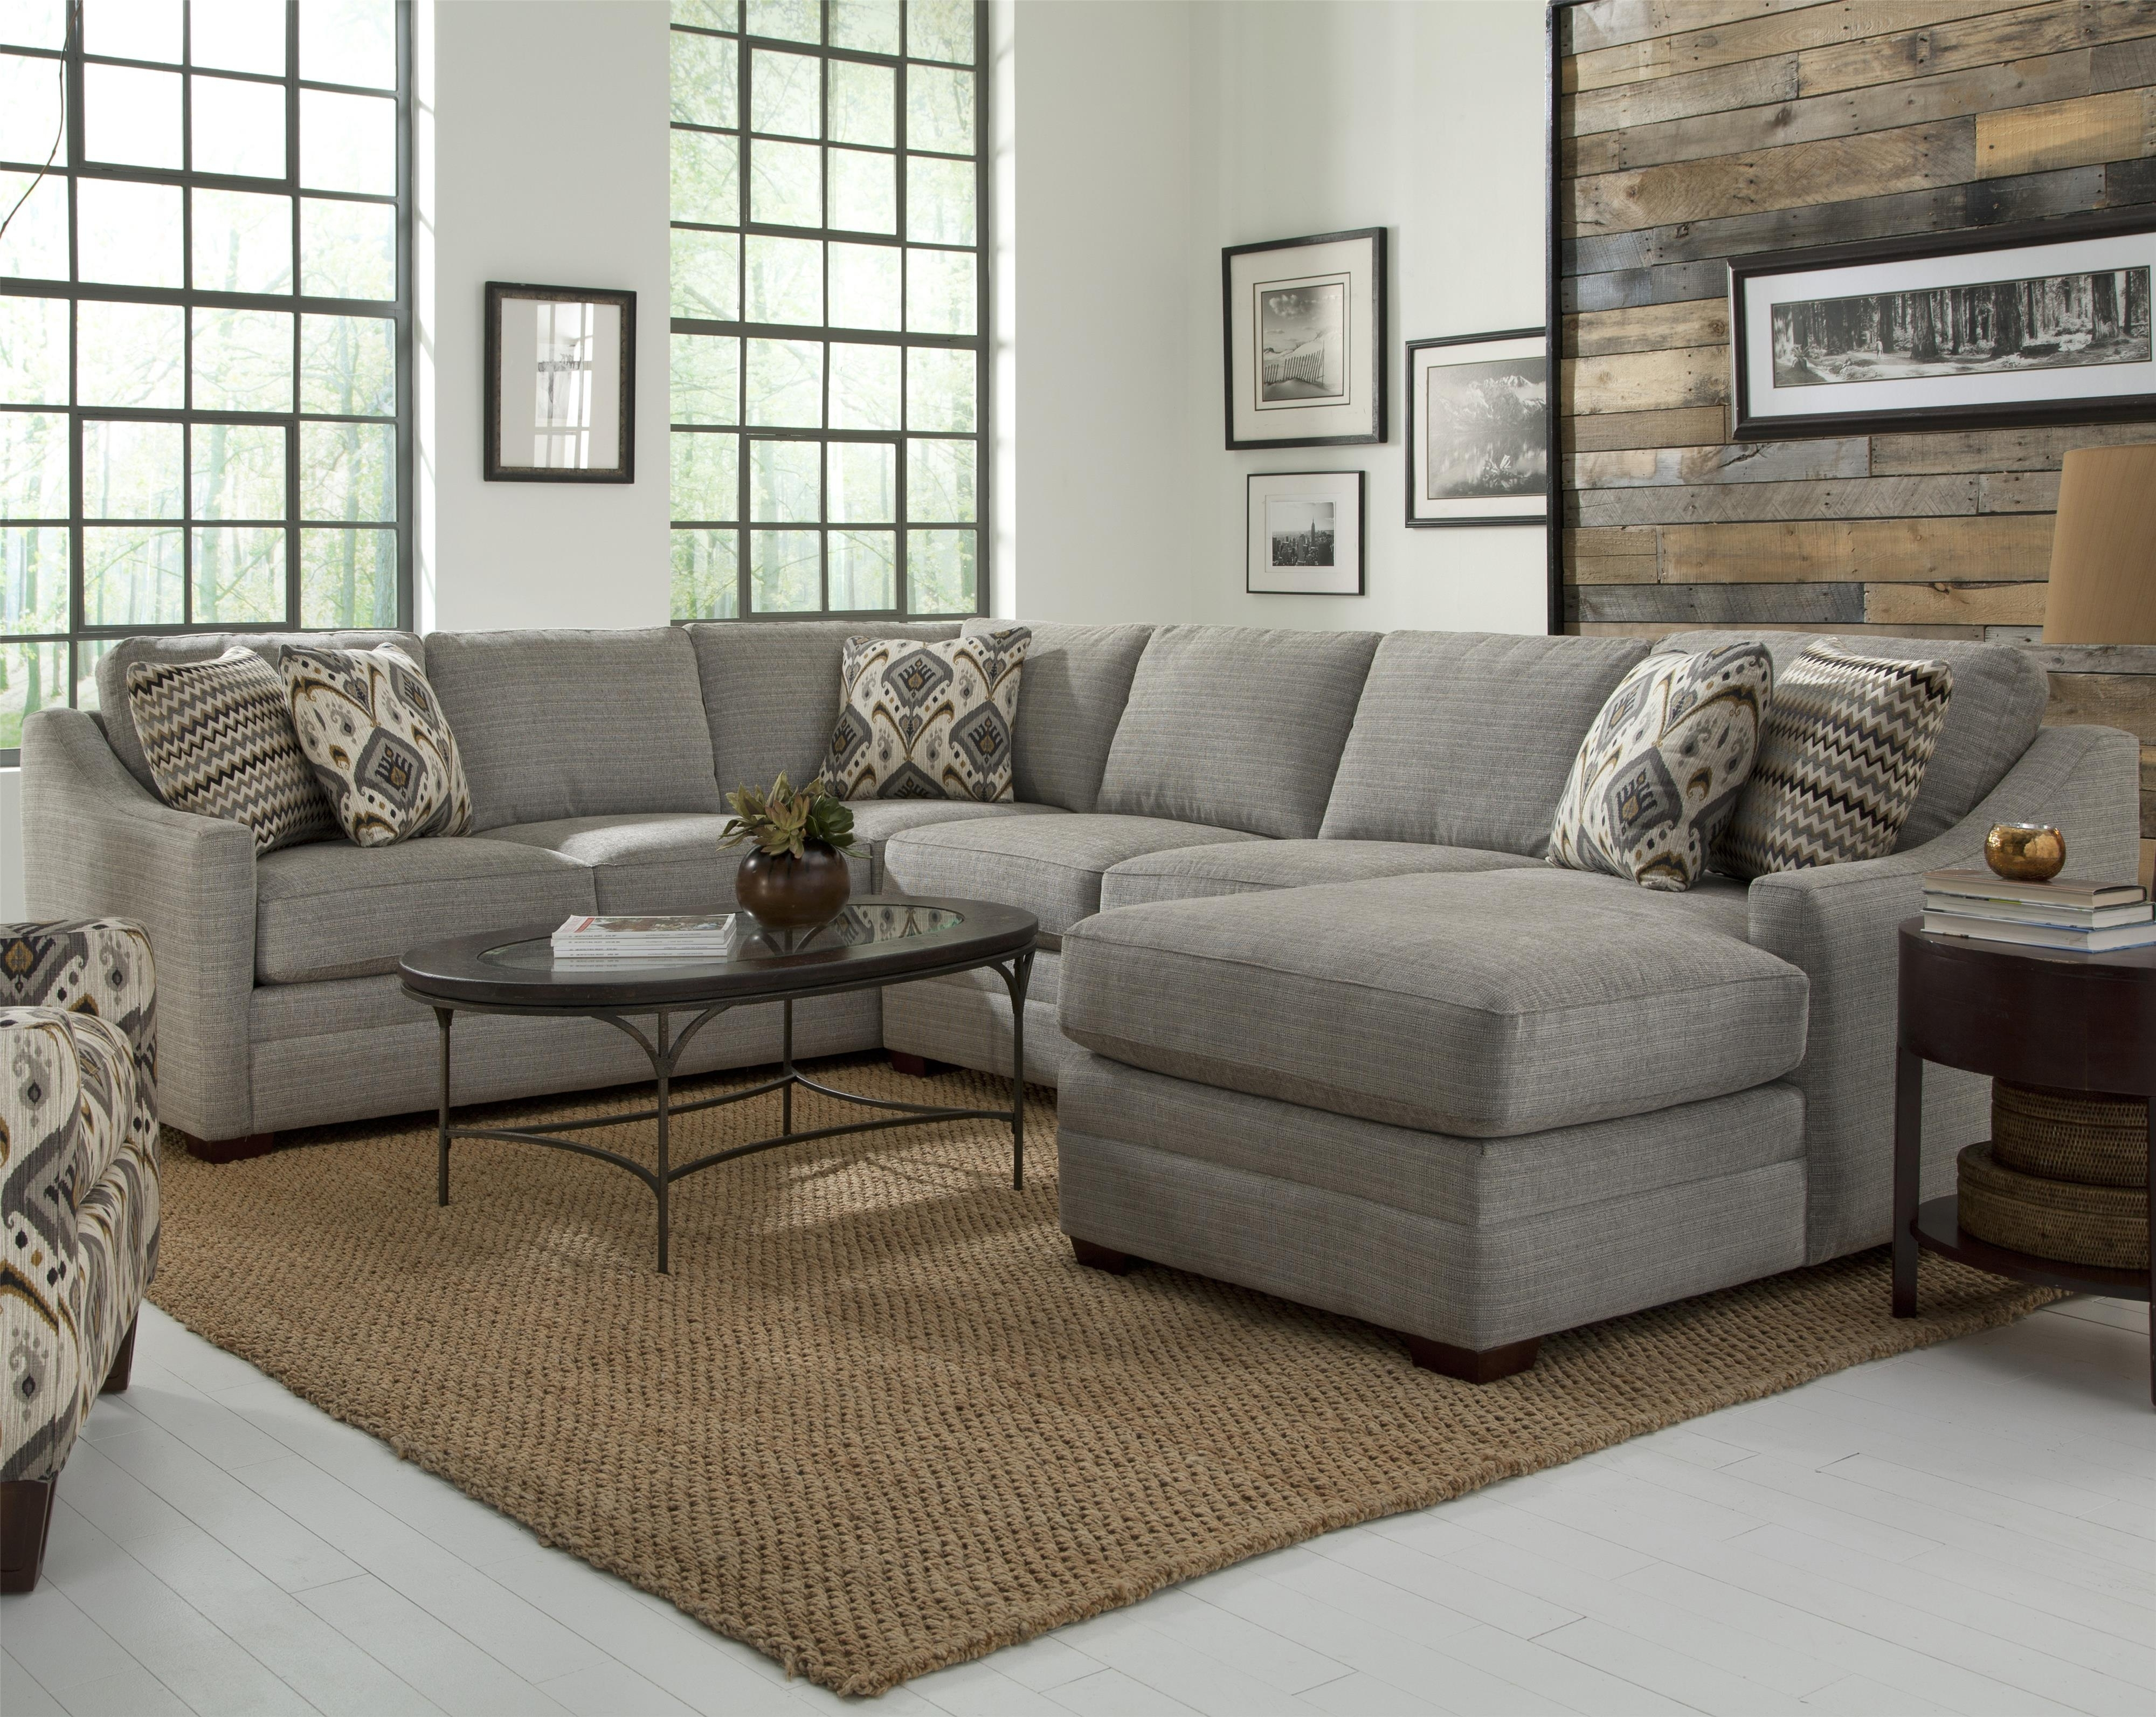 Customizable Four Piece Sectional Sofacraftmaster | Wolf And With Regard To Gardiners Sectional Sofas (Image 3 of 10)